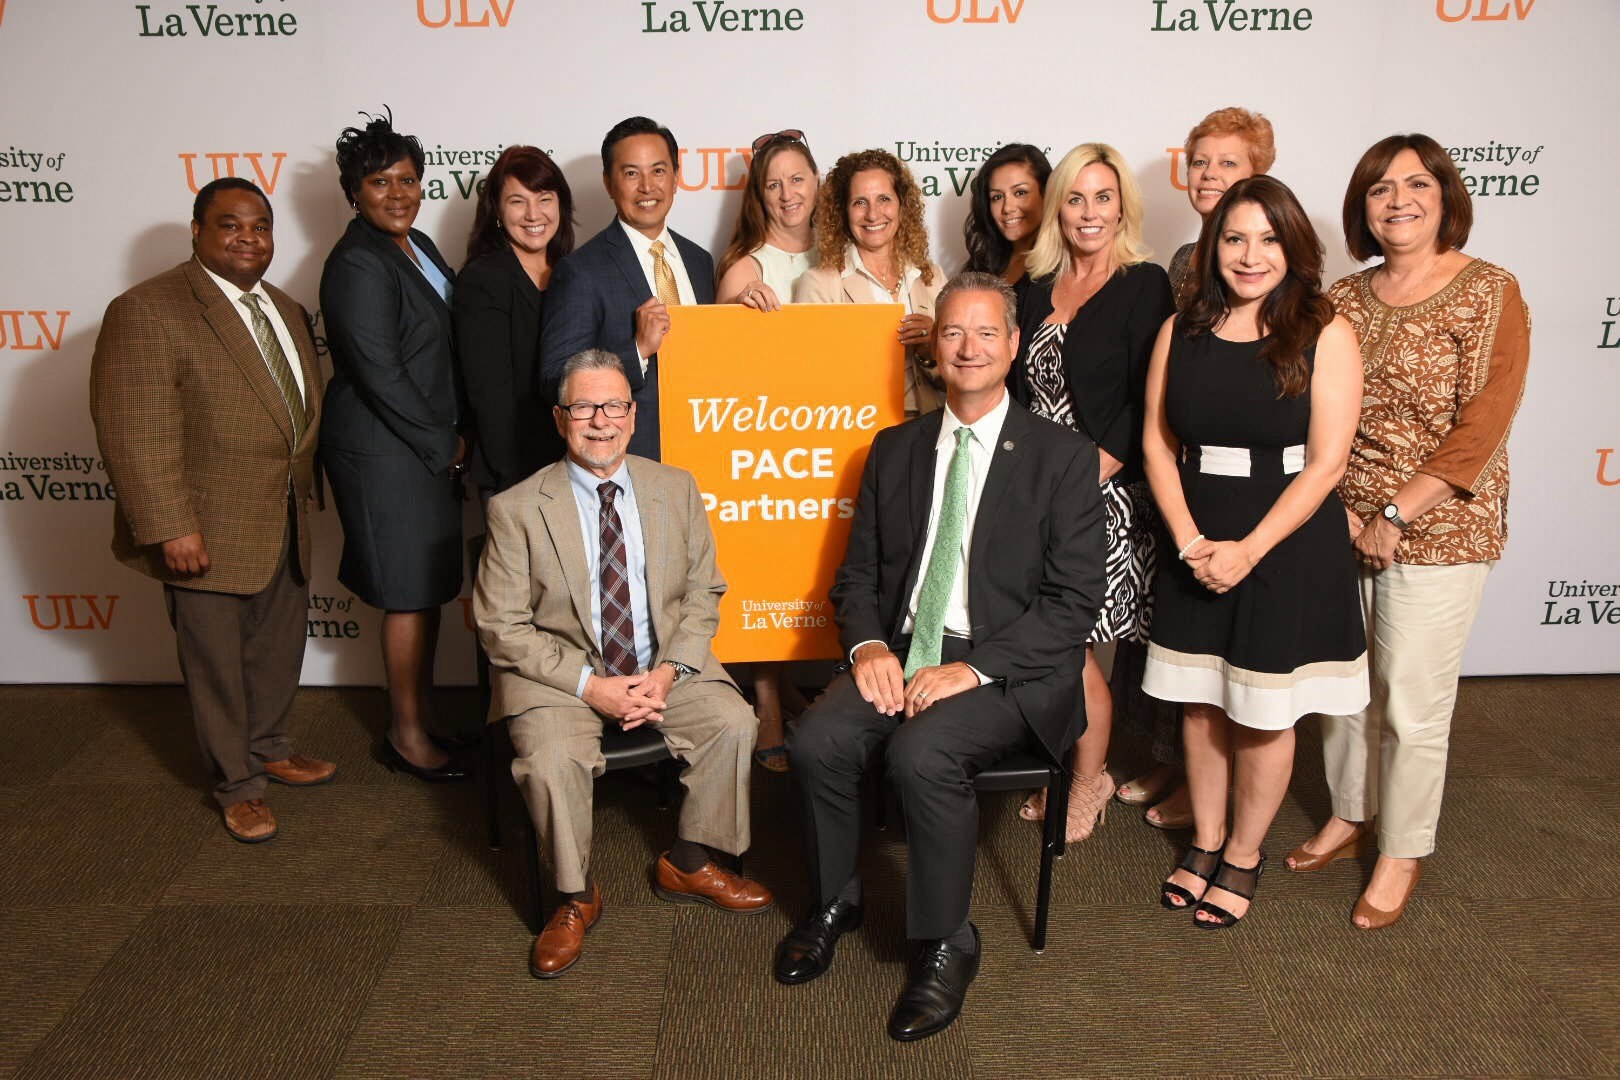 11 More School Districts Partner With University Of La Verne To